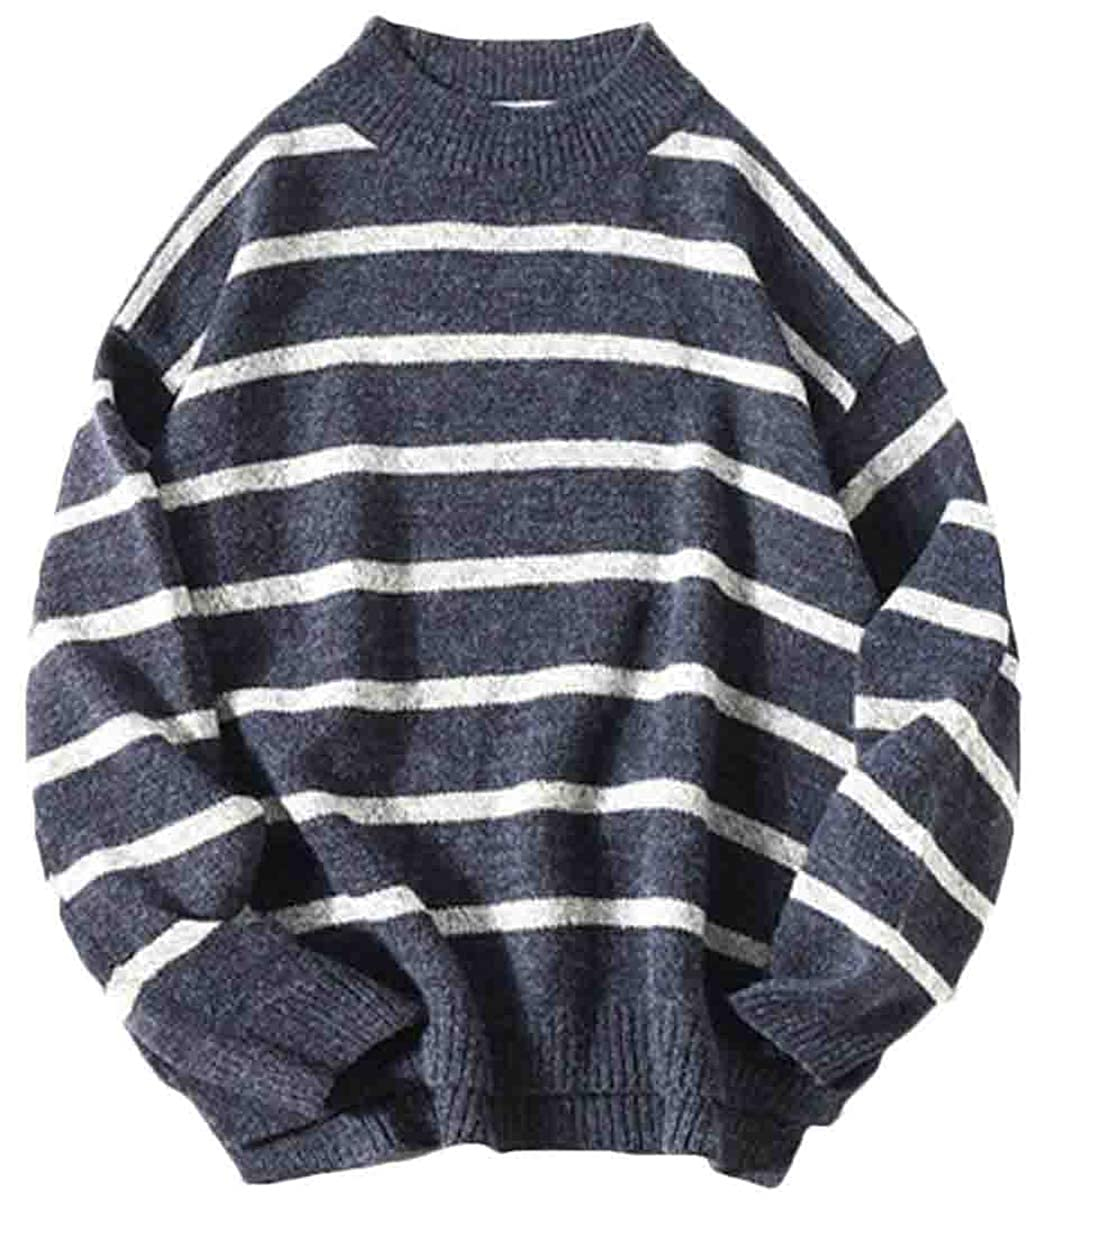 Hurrg Mens Long Sleeve Crew Neck Pullover Knitting Striped Casual Sweater Tops